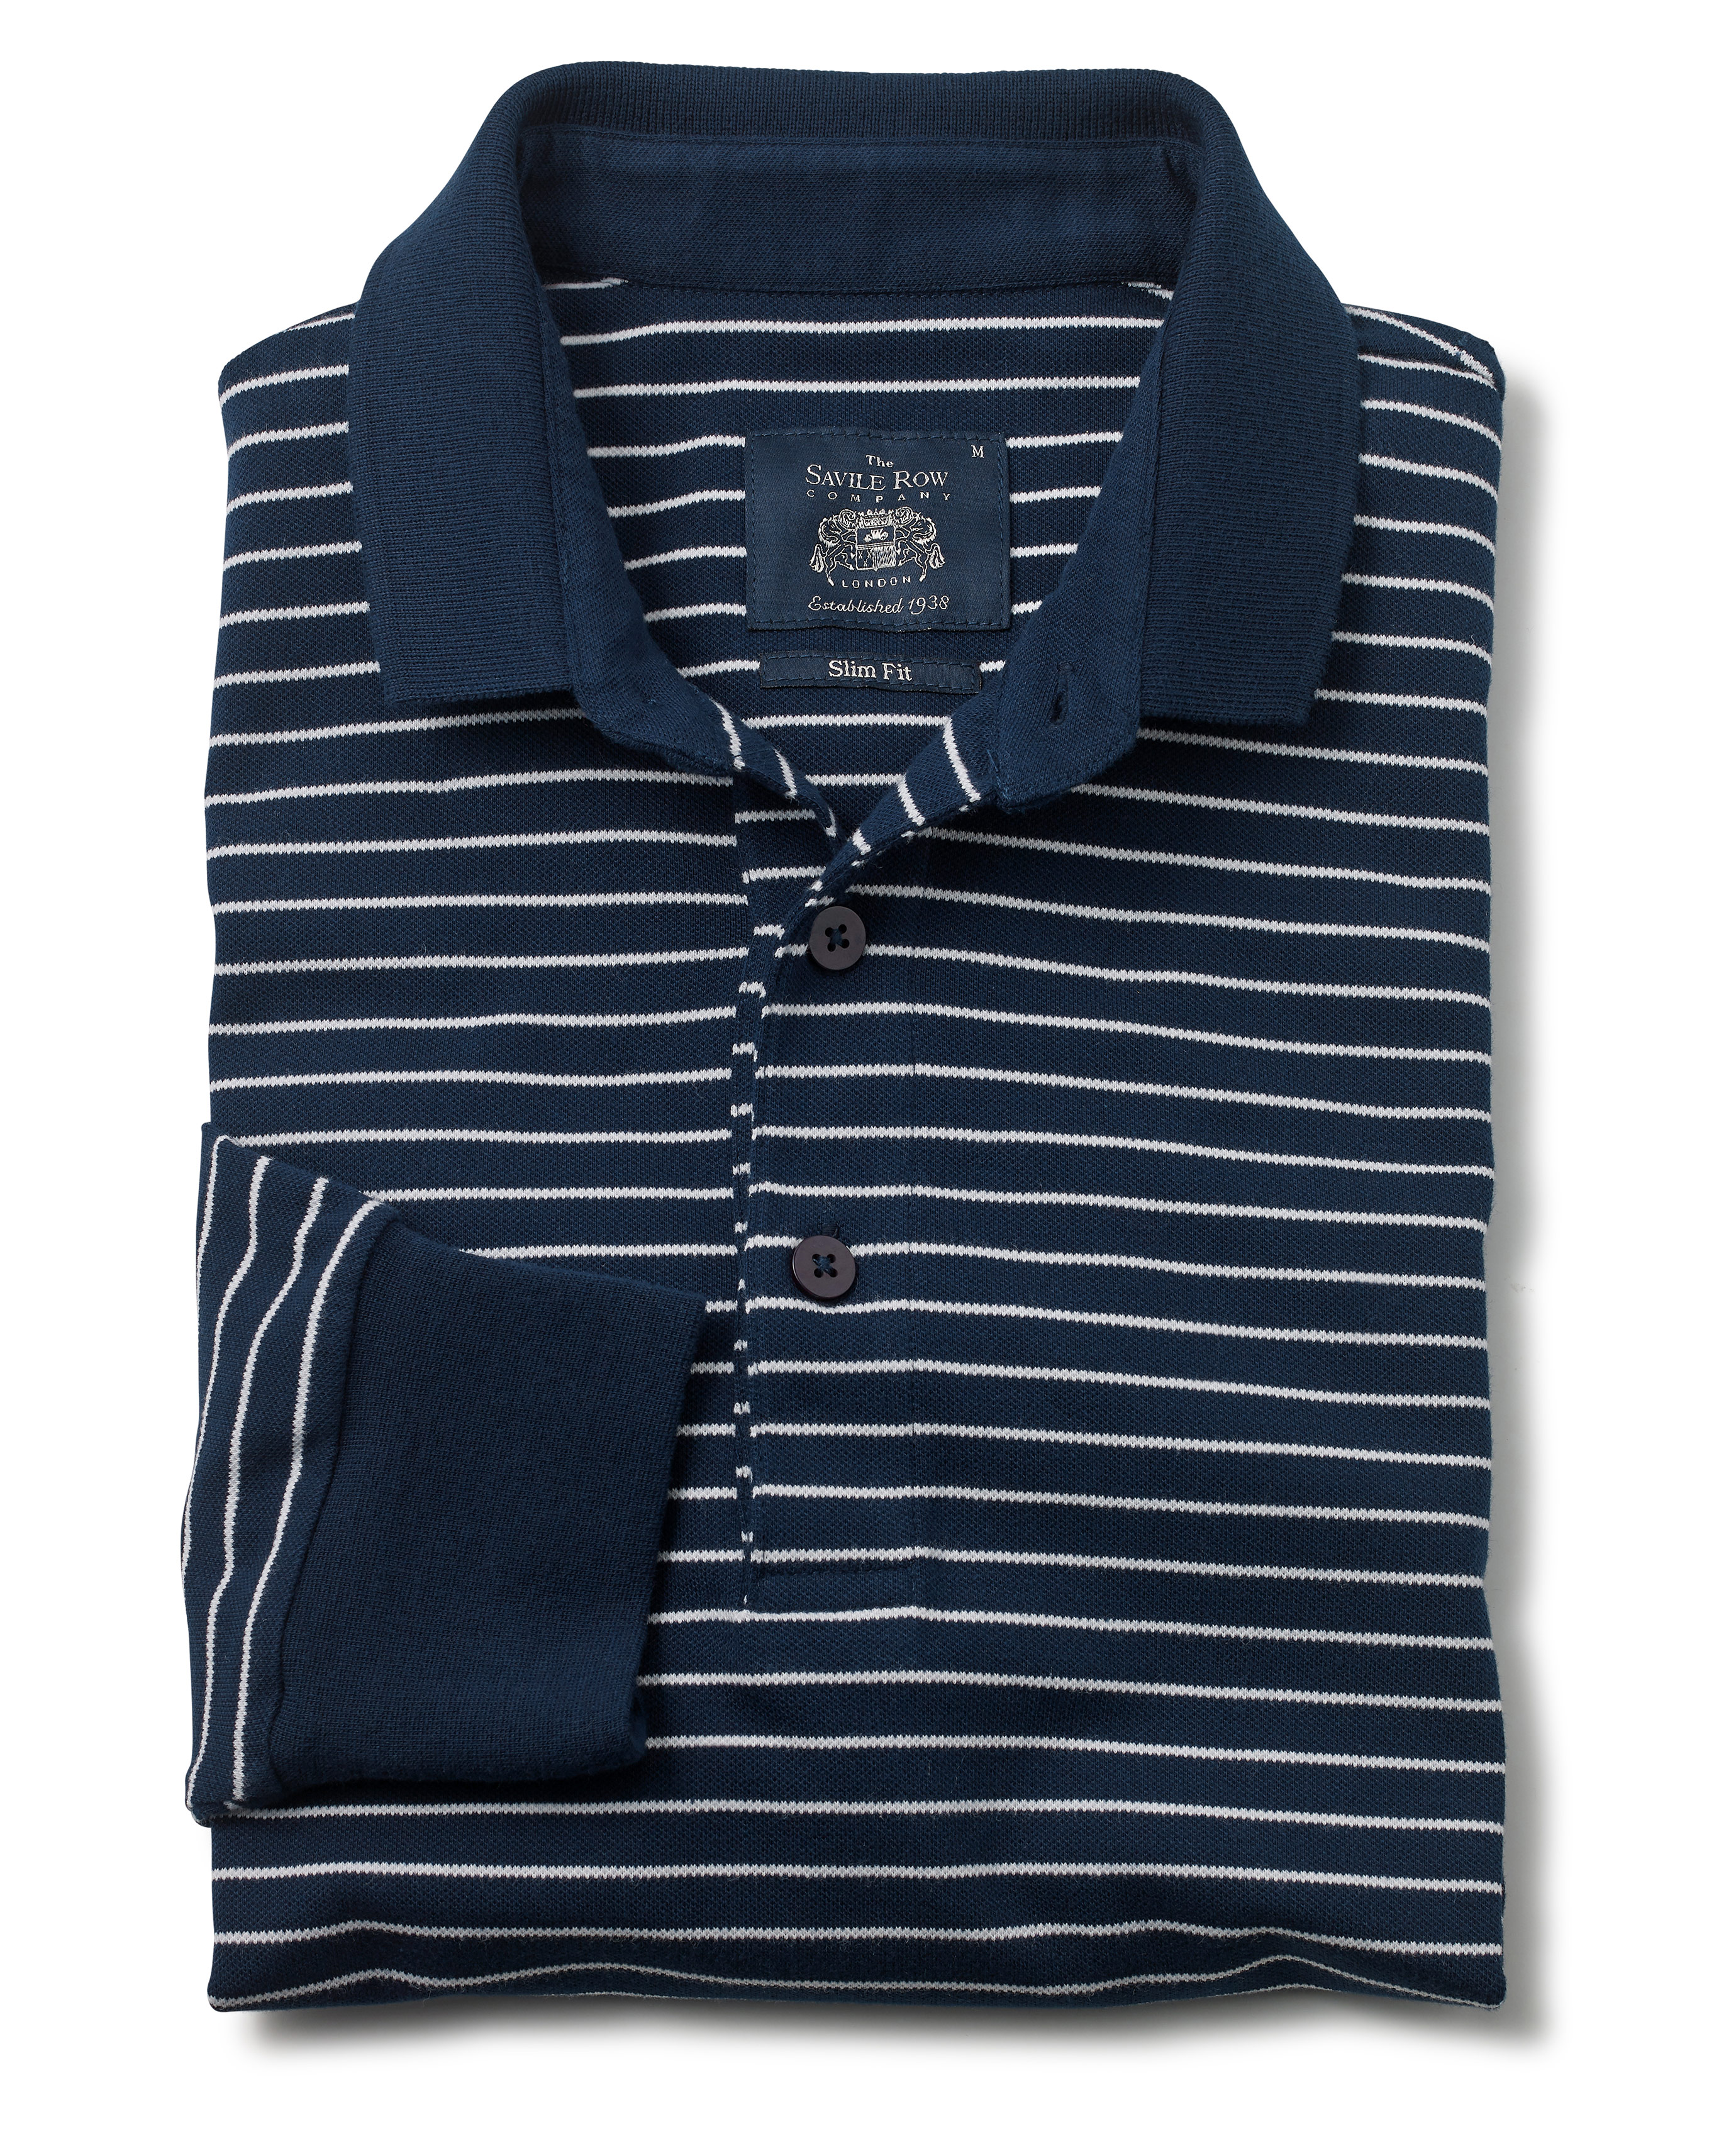 27d78b06 Men's navy and white stripe slim-fit long sleeve polo shirt | Savile Row  Company